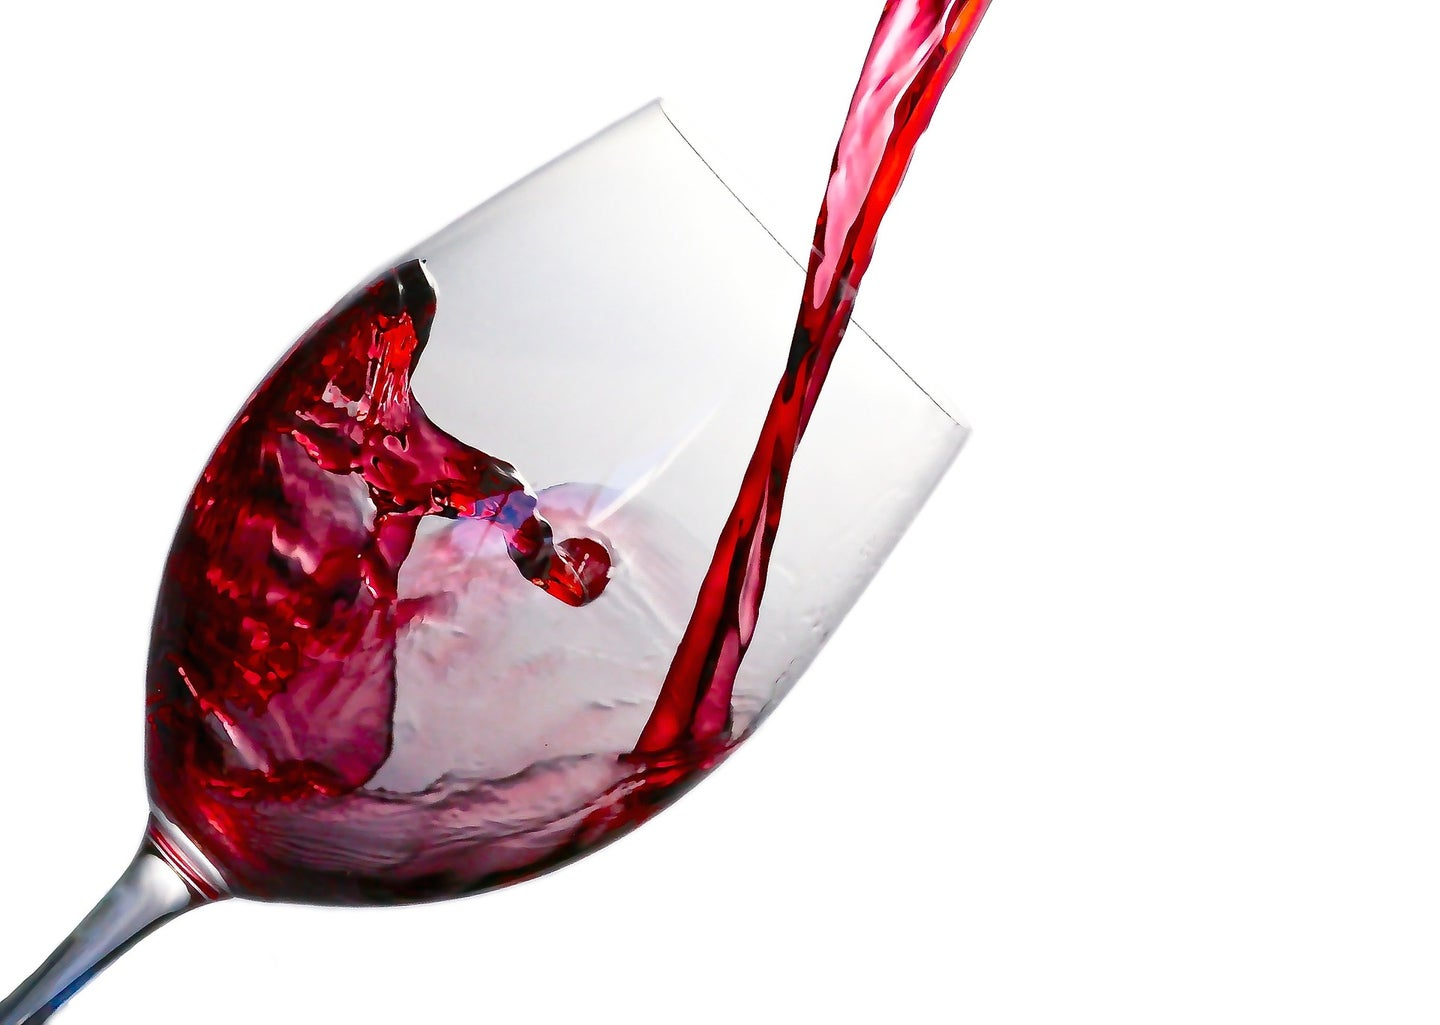 Red wine is a trifecta of chemicals that can make some people feel terrible